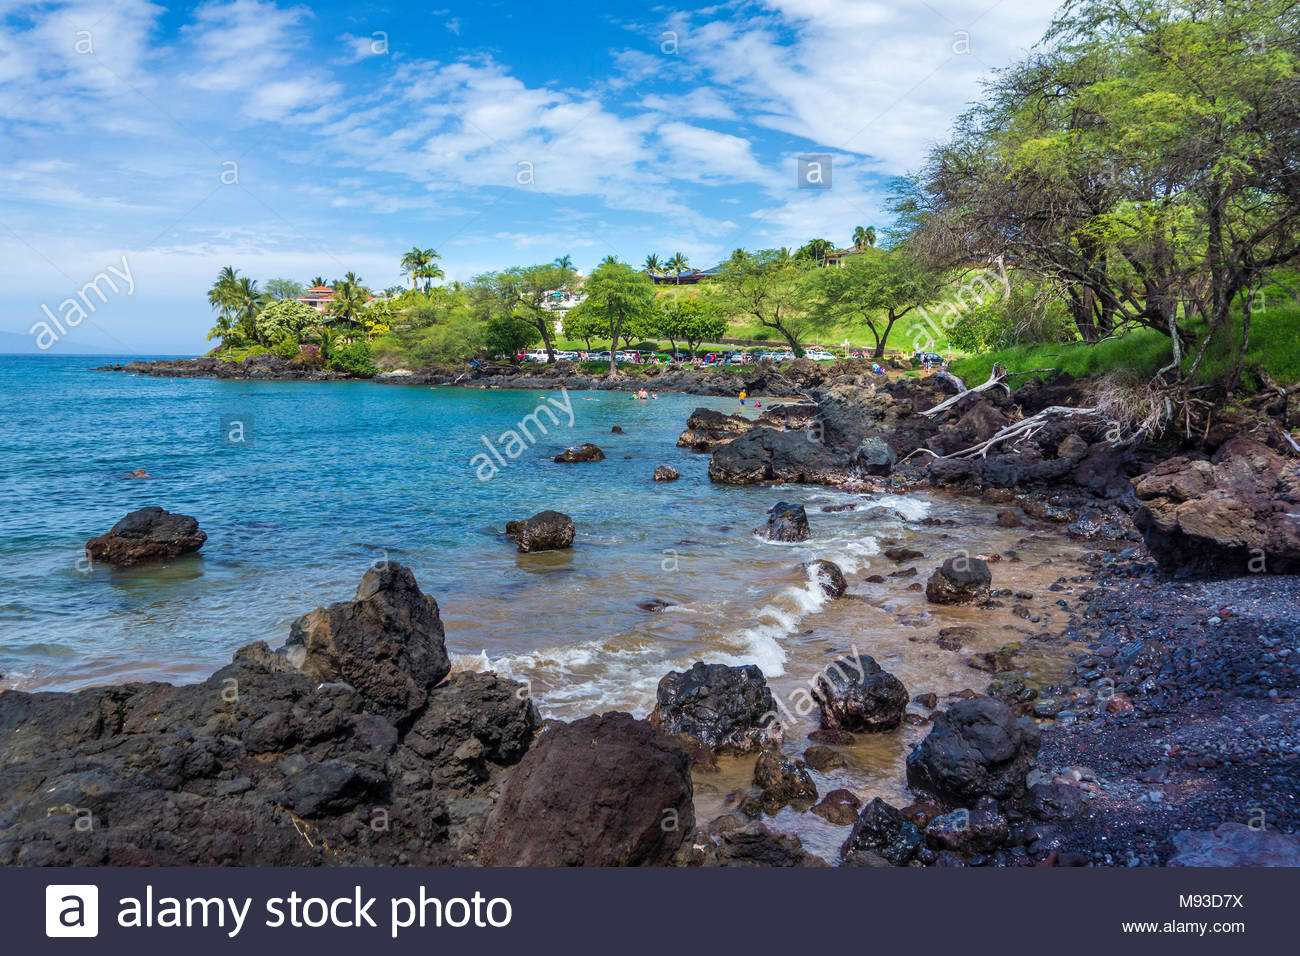 Out of the way Makena Landing Beach Park on the island of Maui in the state of Hawaii USA - Stock Image